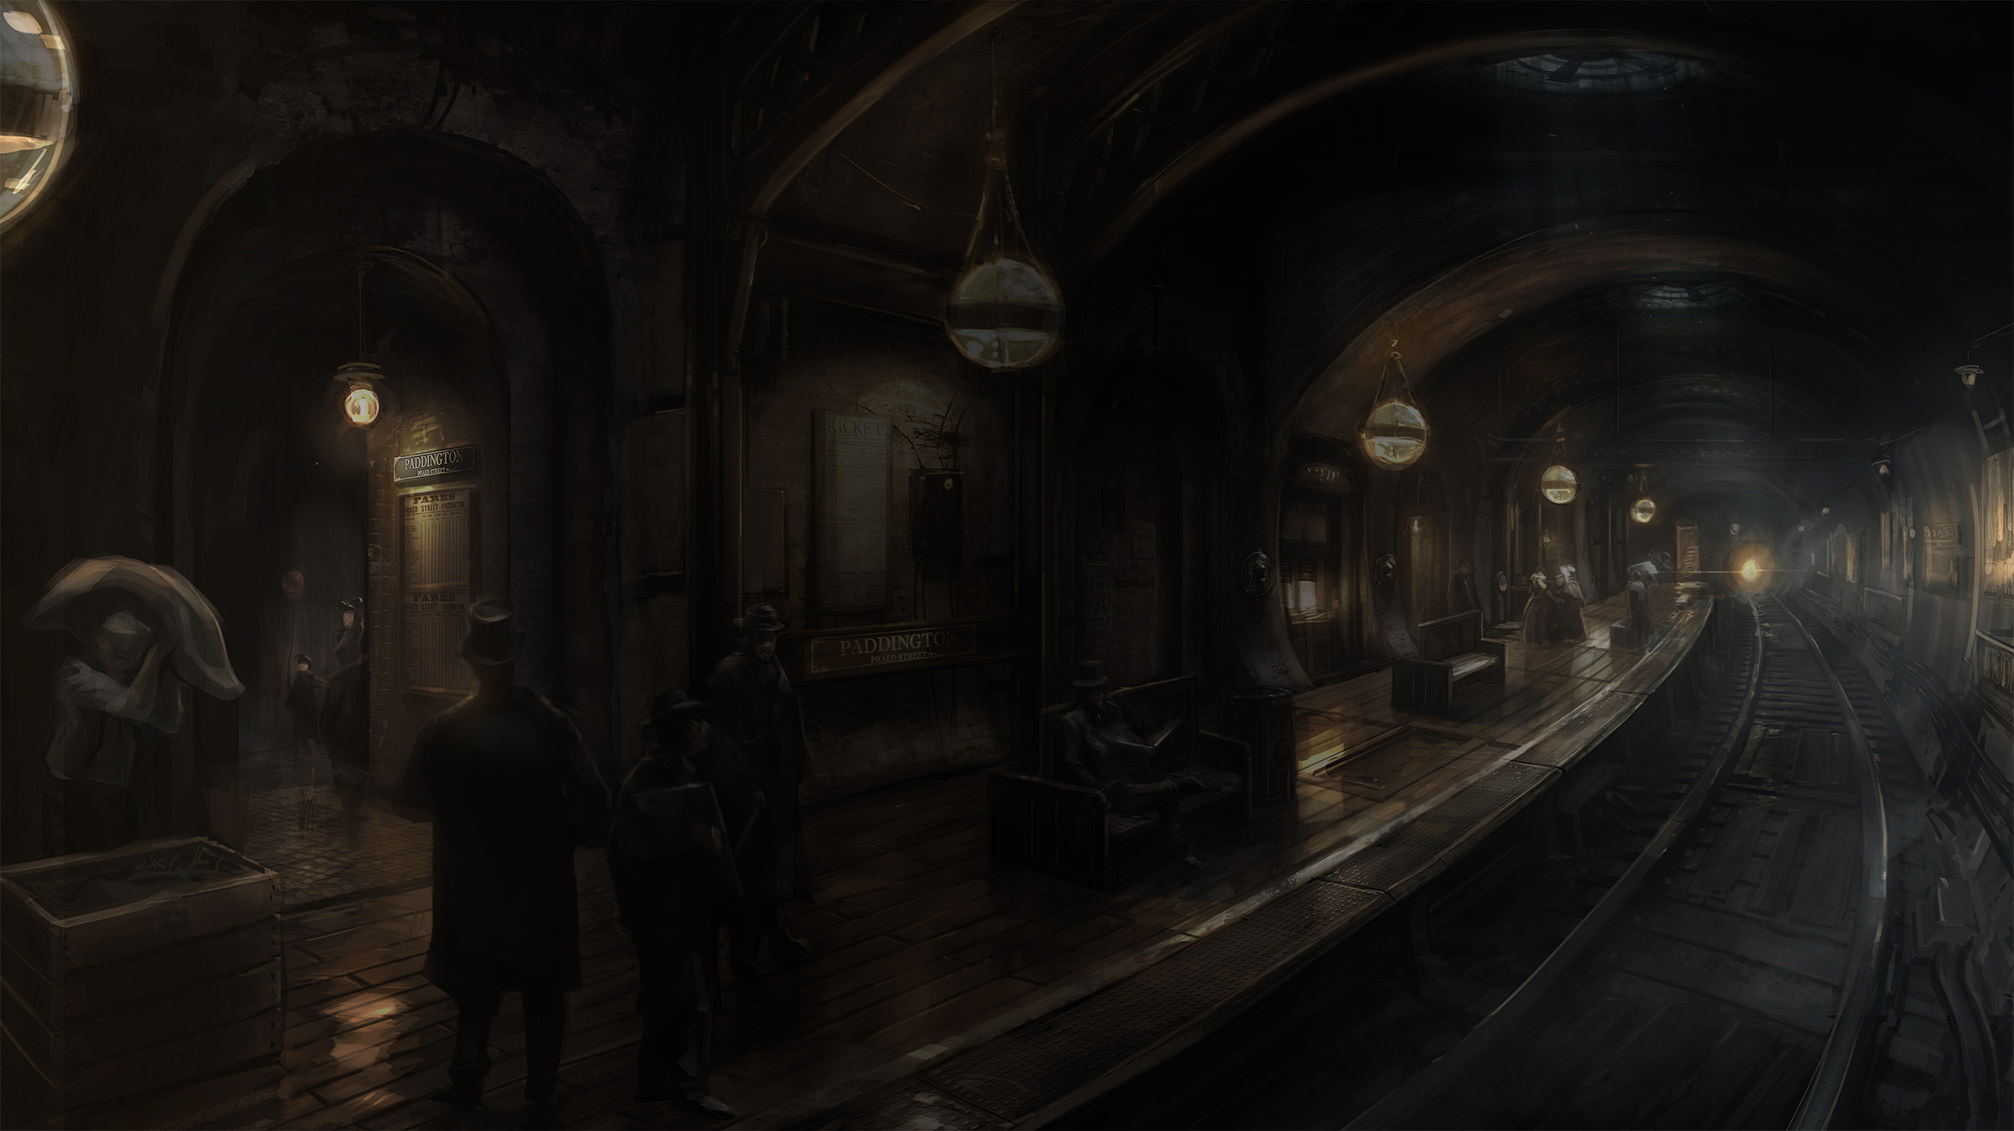 PS4 Exclusive The Order: 1886 Gets New Gorgeous Looking ...